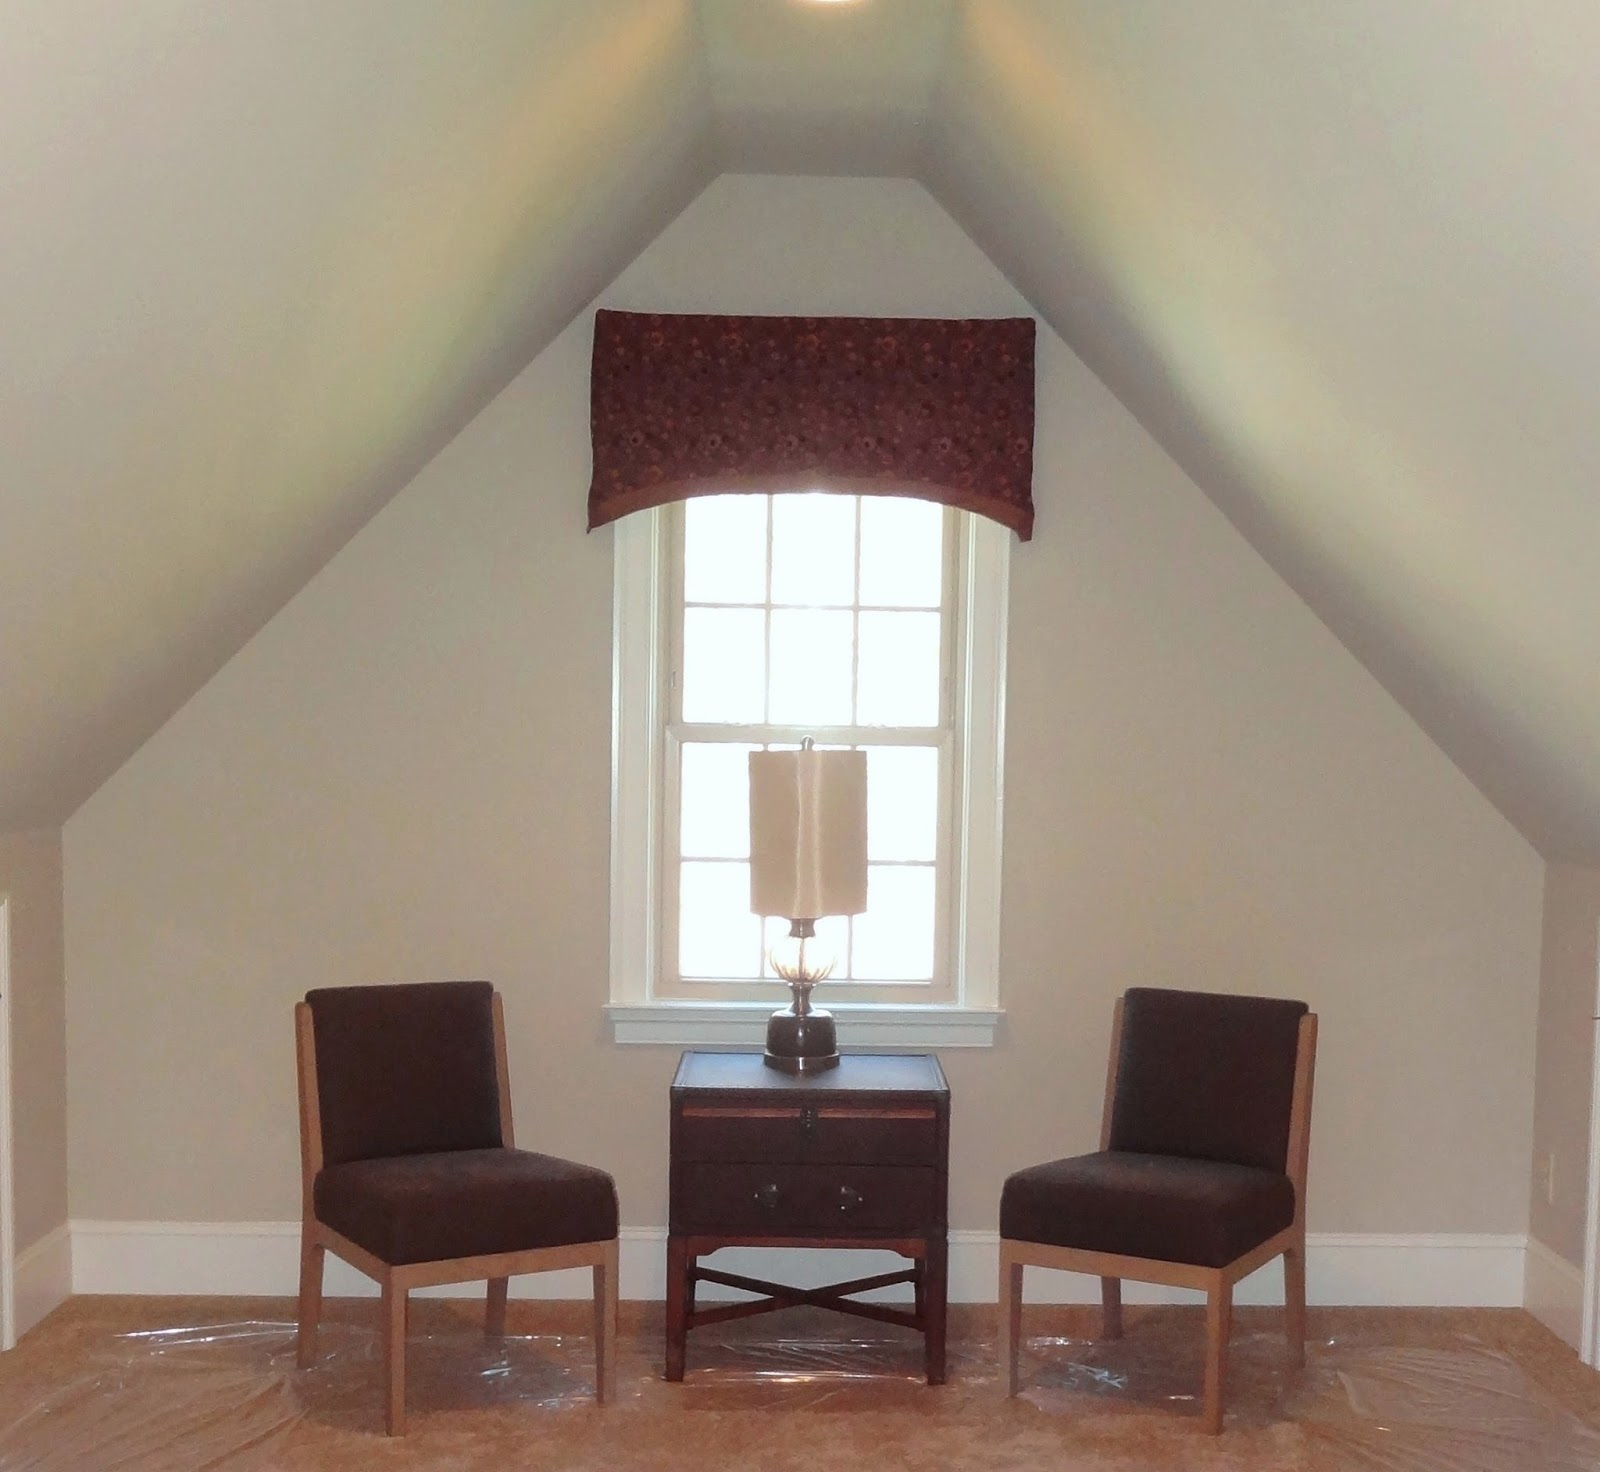 How to furnish and paint a room with slanted ceiling or dormer walls?